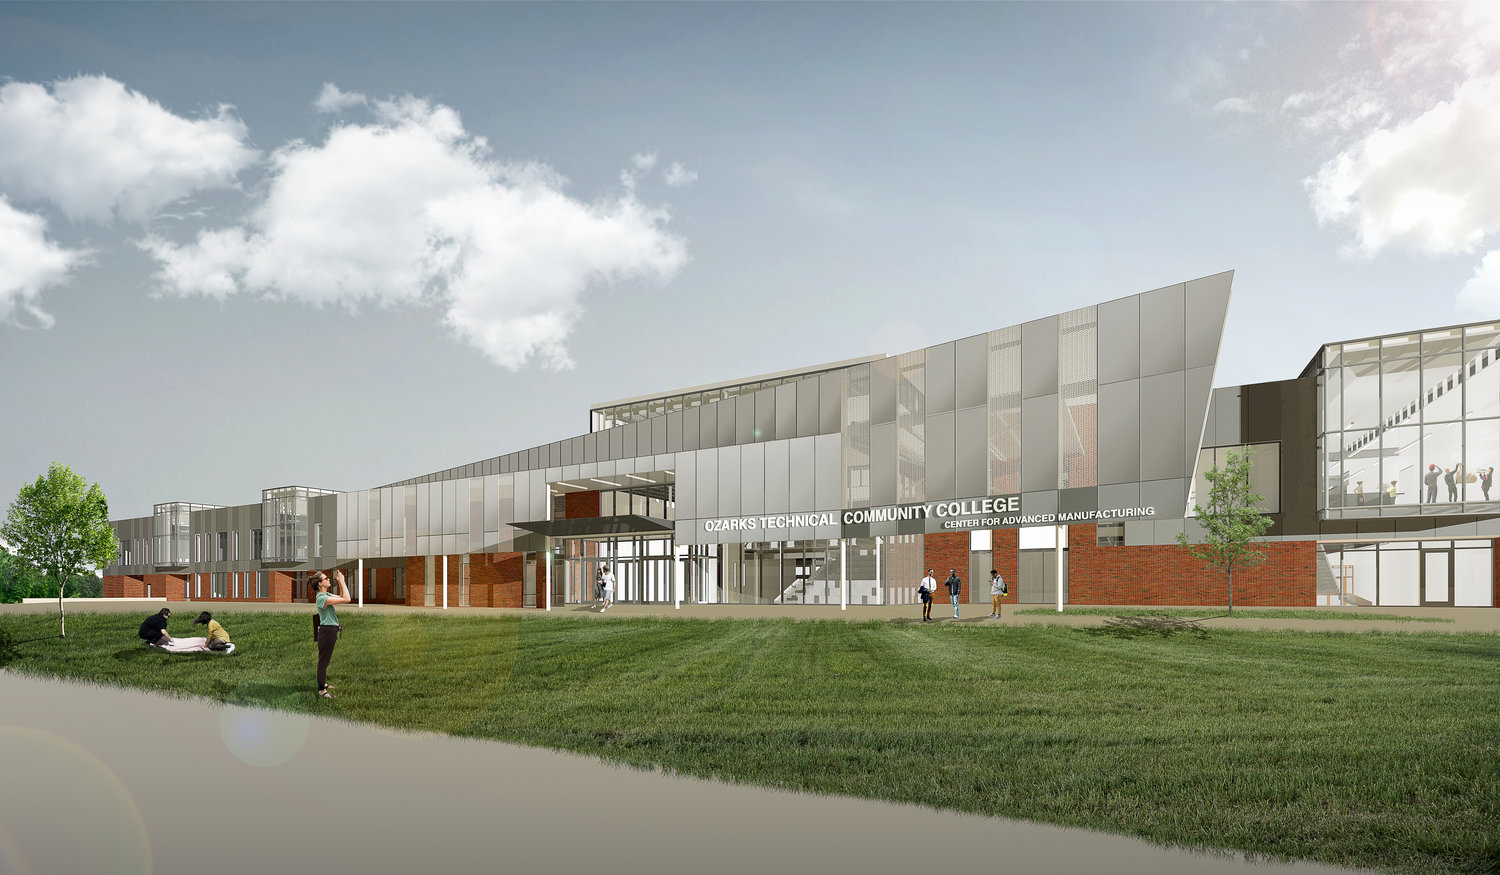 A Thursday groundbreaking ceremony is scheduled for Ozarks Technical Community College's Center for Advanced Manufacturing.